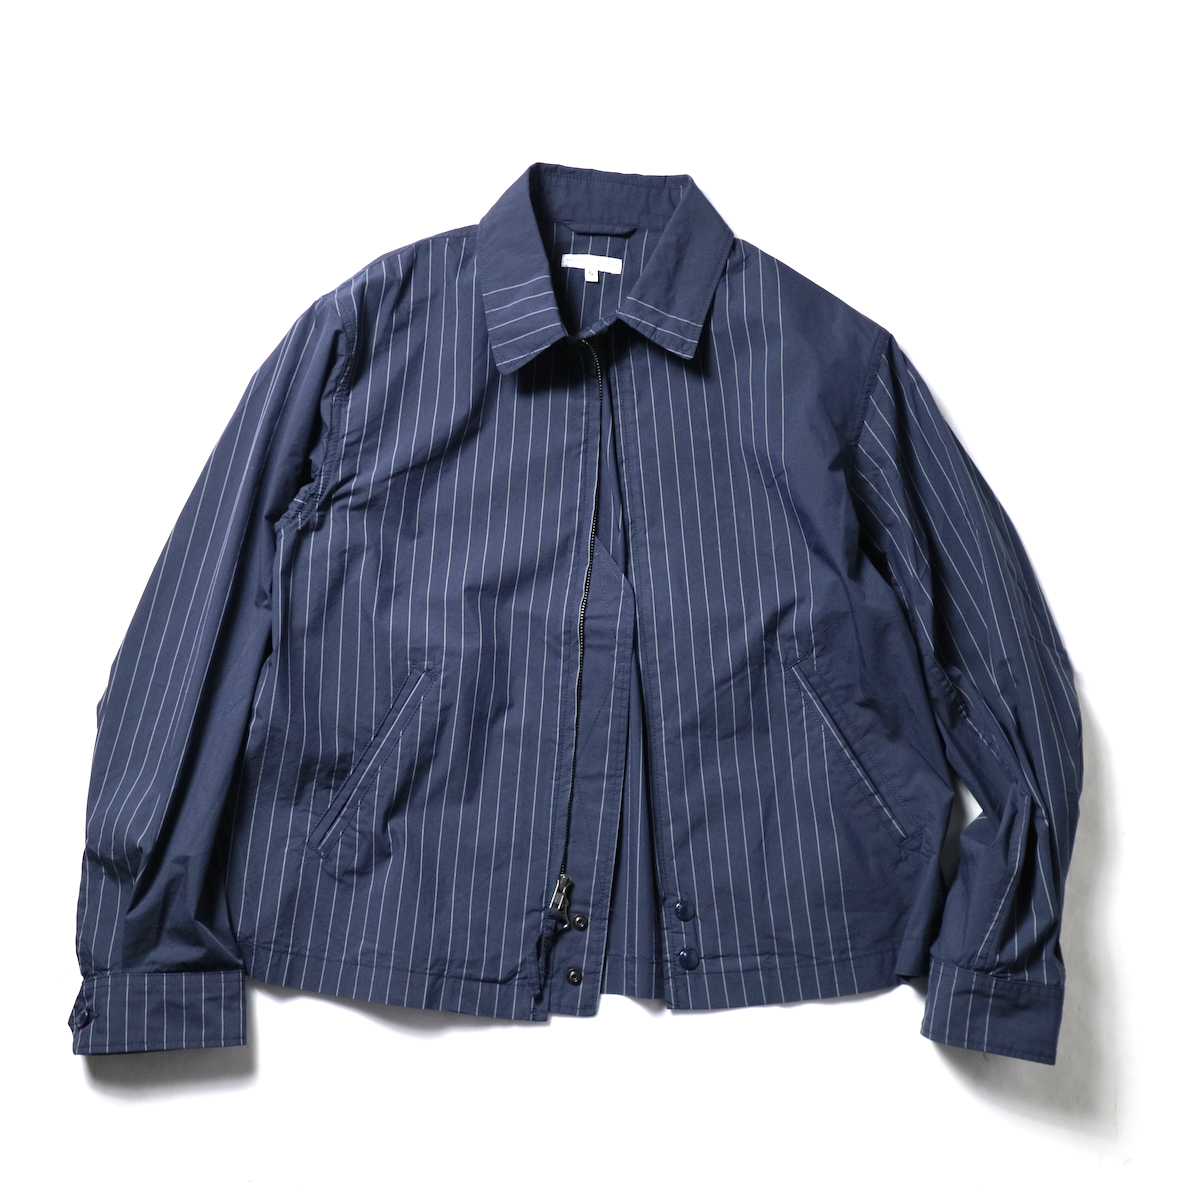 Engineered Garments / Claigton Jacket - Nyco Gangster Stripe (Dk.Navy)